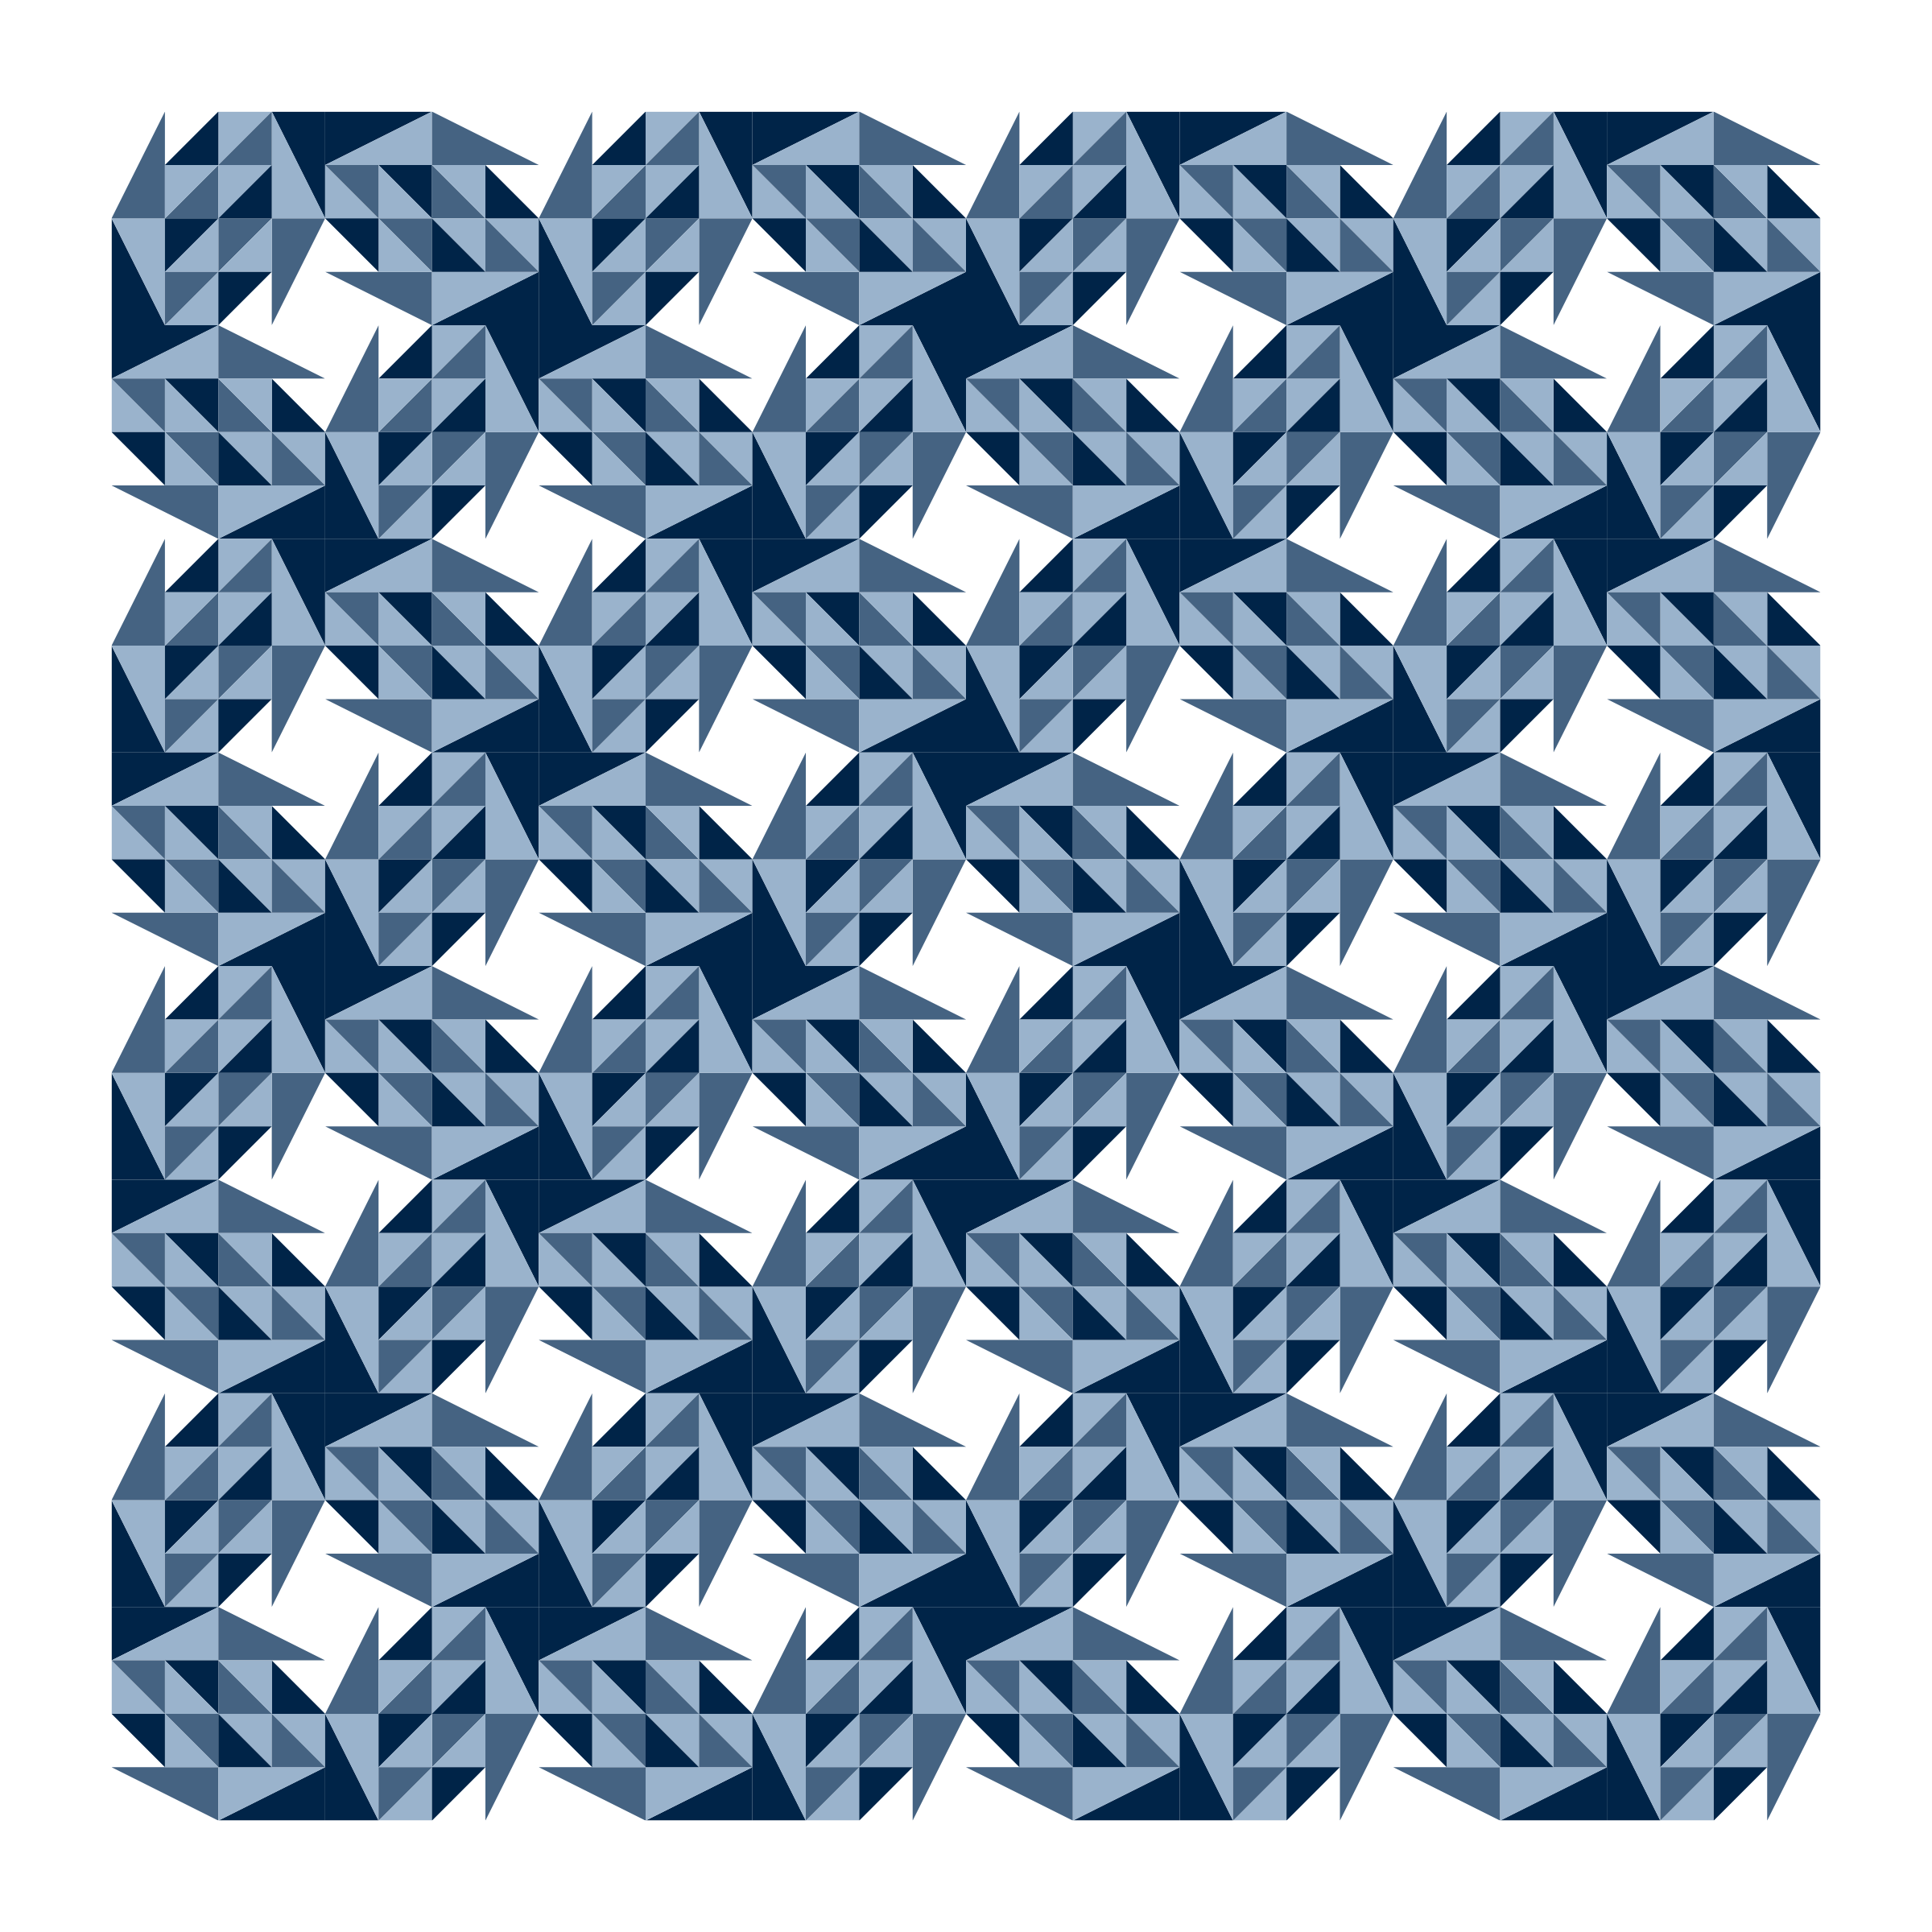 Clarendon Quilt Pattern - throw size image